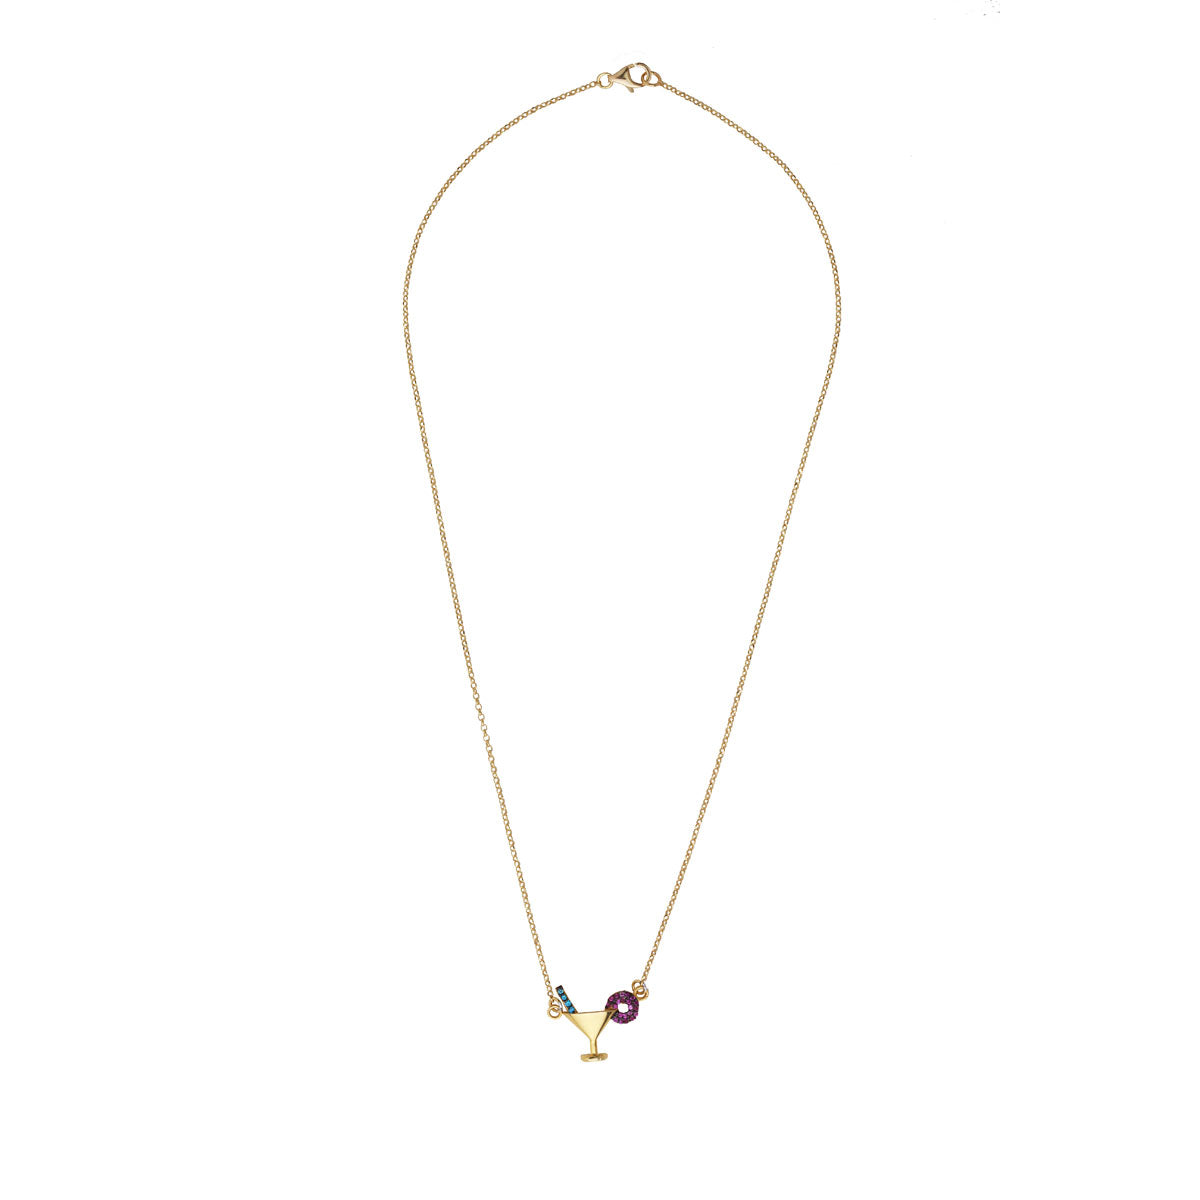 Cocktail Glass Gold Plated 925 Sterling Silver Chain Short Necklace